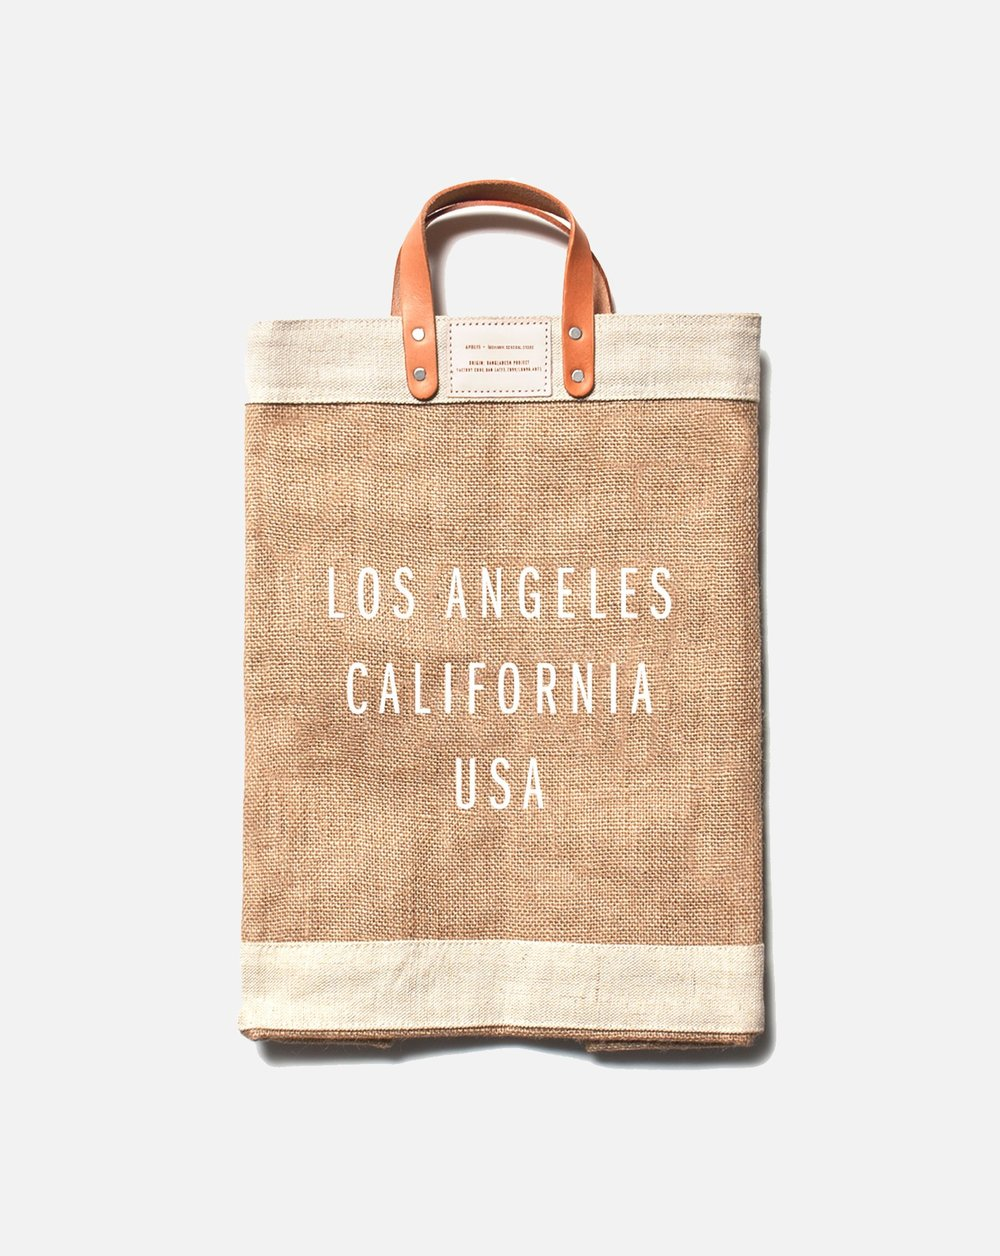 👜bags👜 - The Los Angeles Market Bag from Reservoir is ethically designed by Apolis to an all-in-one, long lasting item. The waterproof interior is easy to wipe clean, so it's perfect for active moms who need durable items for everyday use.https://reservoir-la.com/📍8820 Washington Blvd suite 102, Culver City, CA 90232